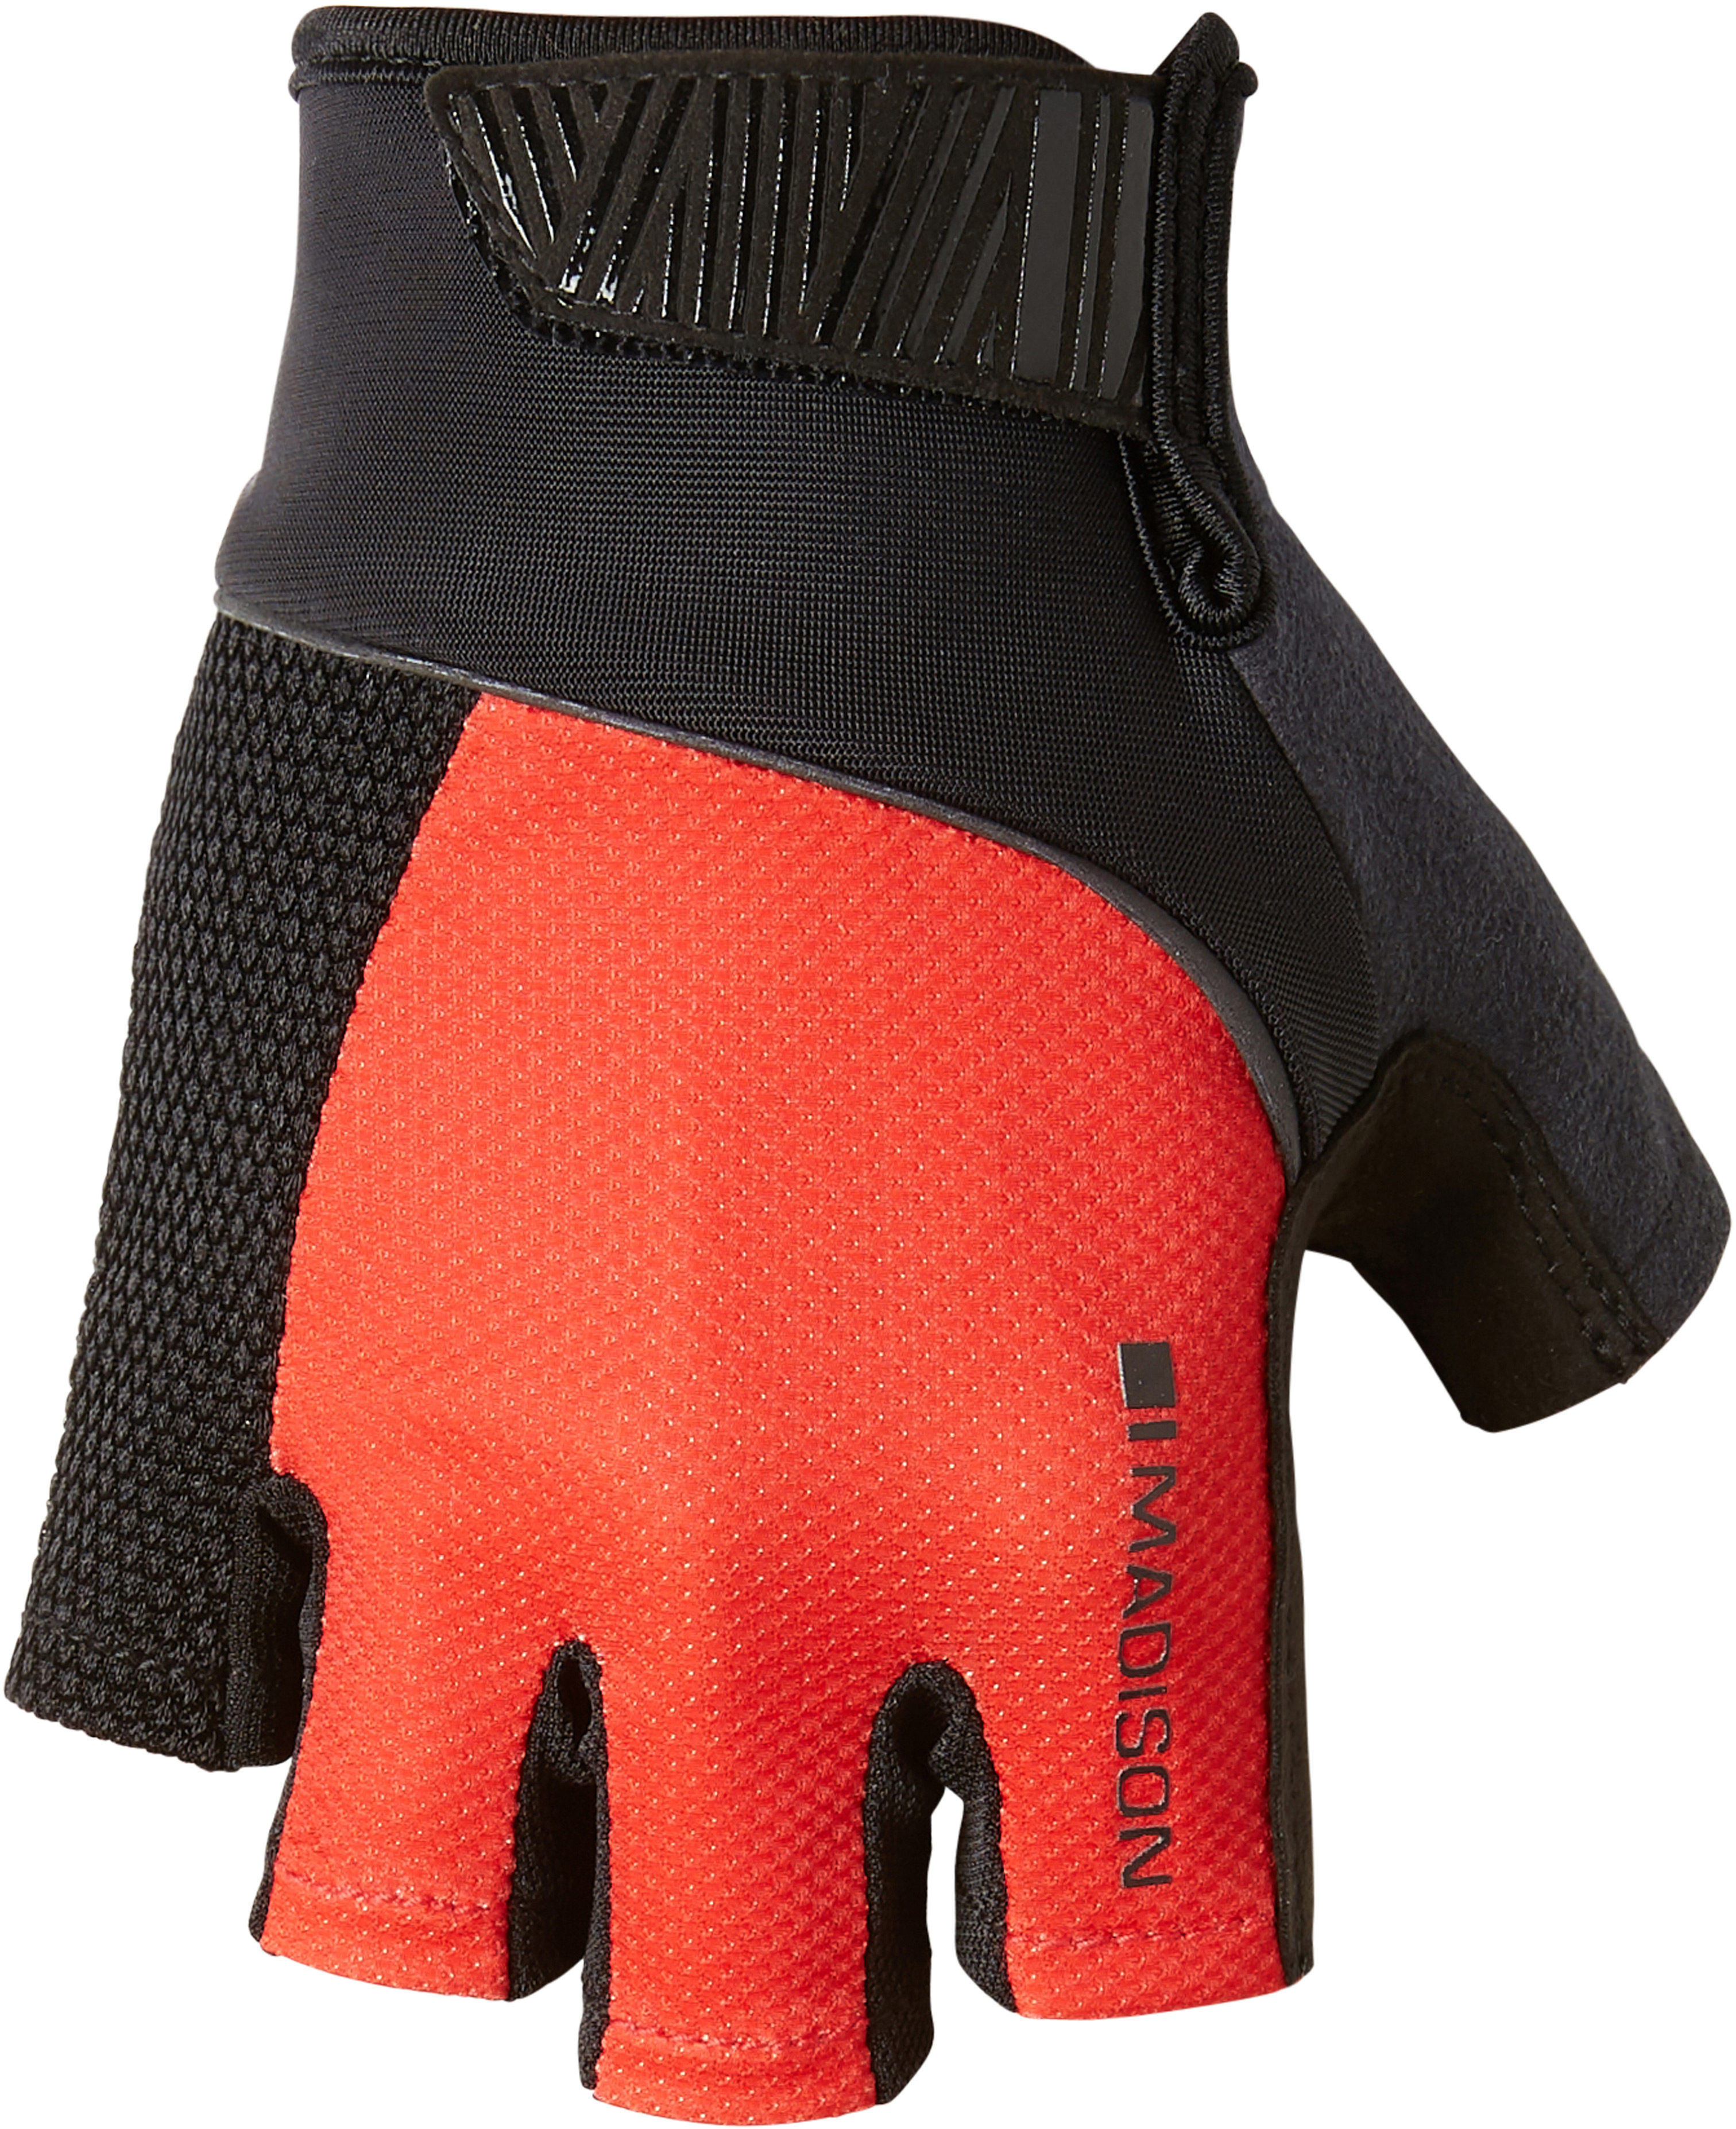 Sportive Men's Mitts Red/Black Large